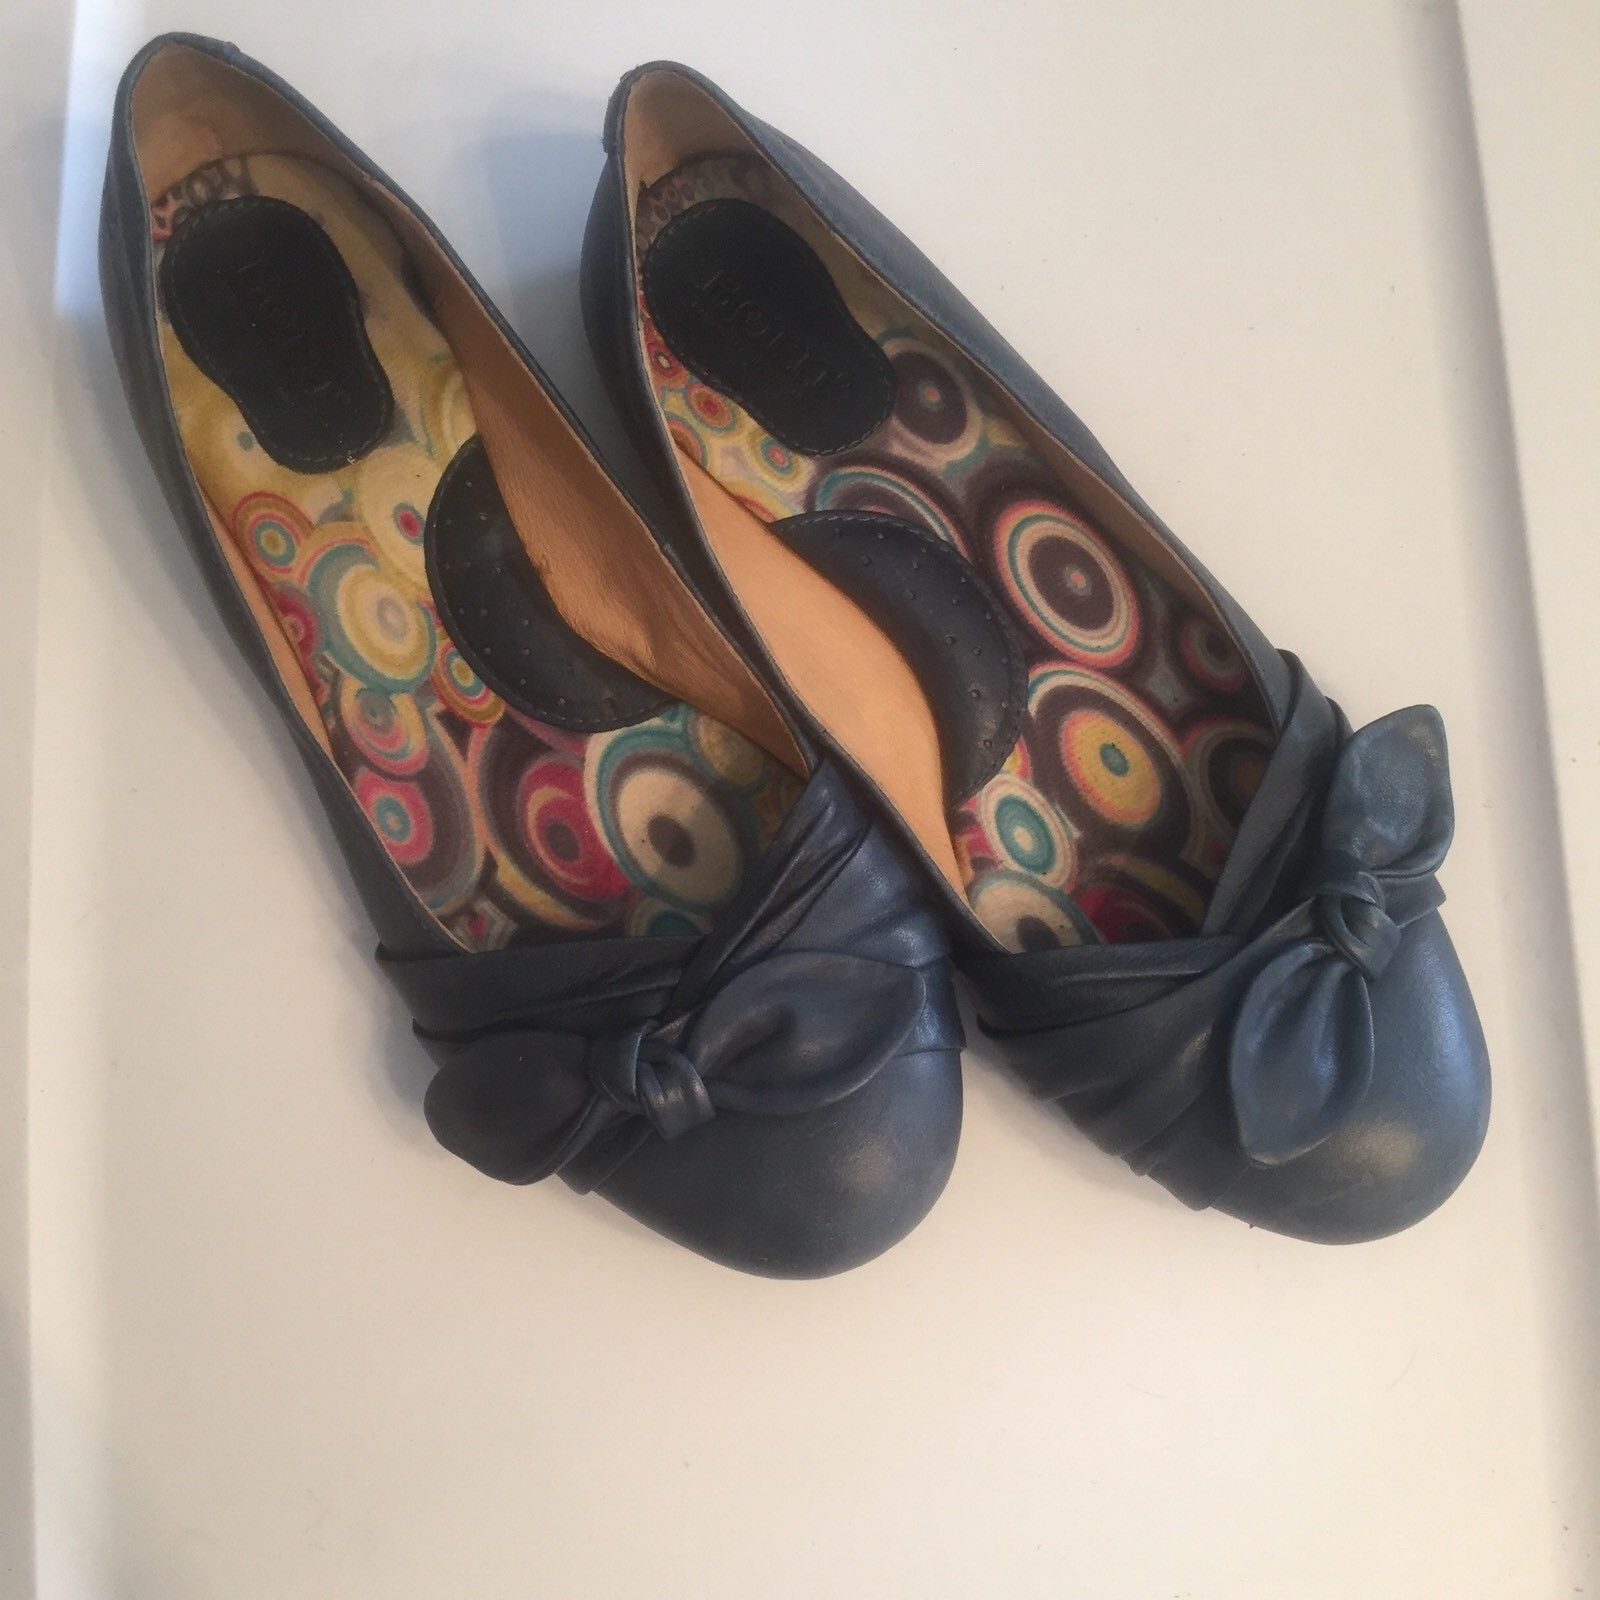 Born Dusty Blue Leather Ballet Flats with Bow Detail 8.5 M Slip On Loafers